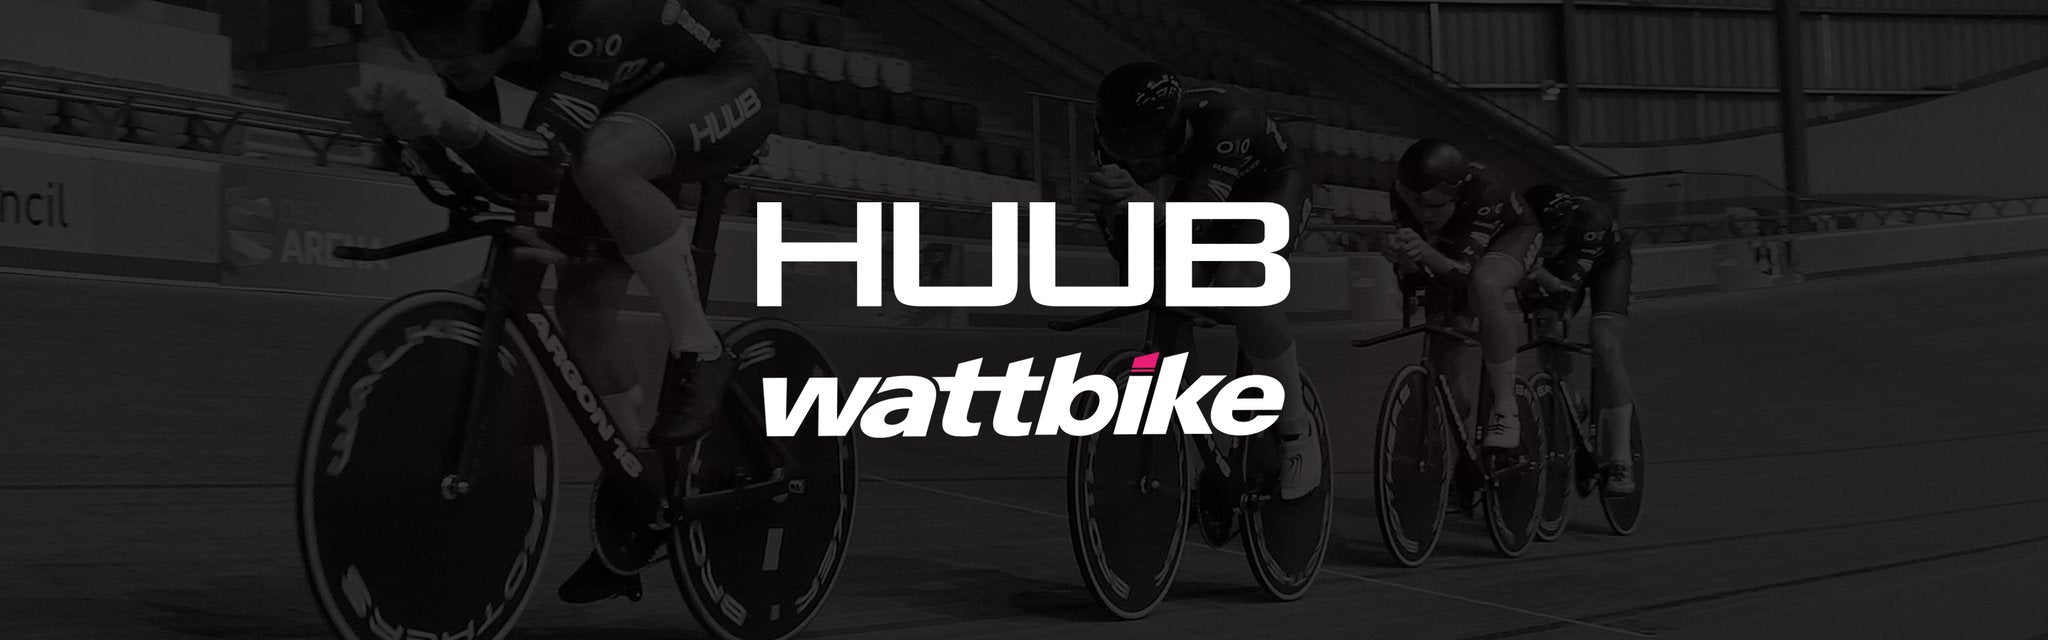 HUUB Wattbike Test Team